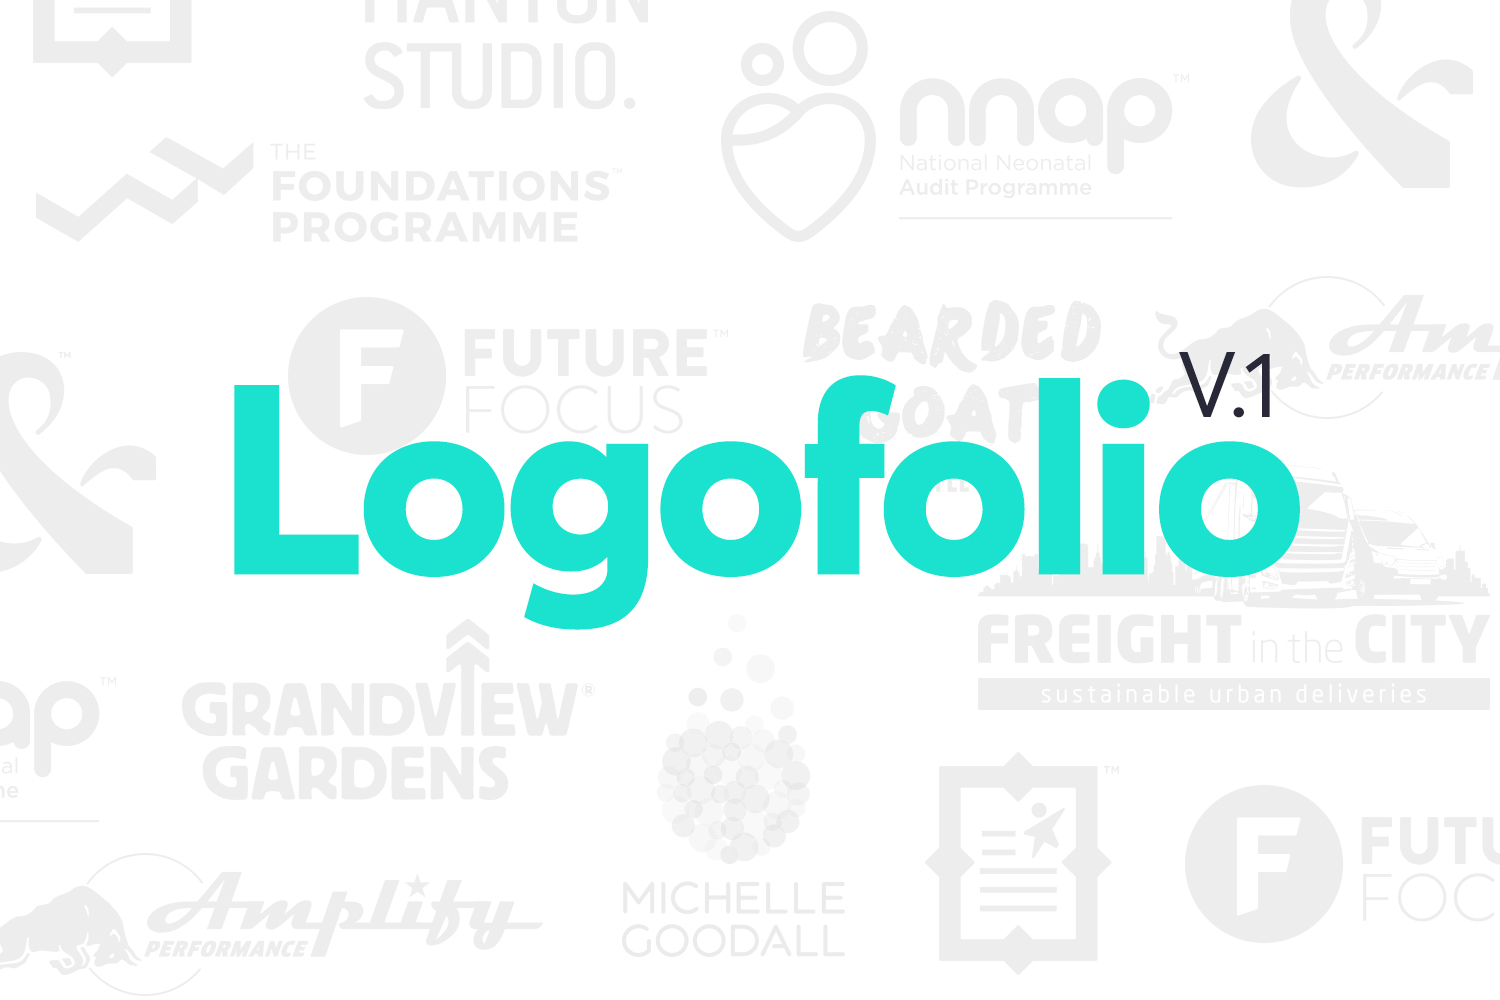 Bourne_and_bred_logofolio